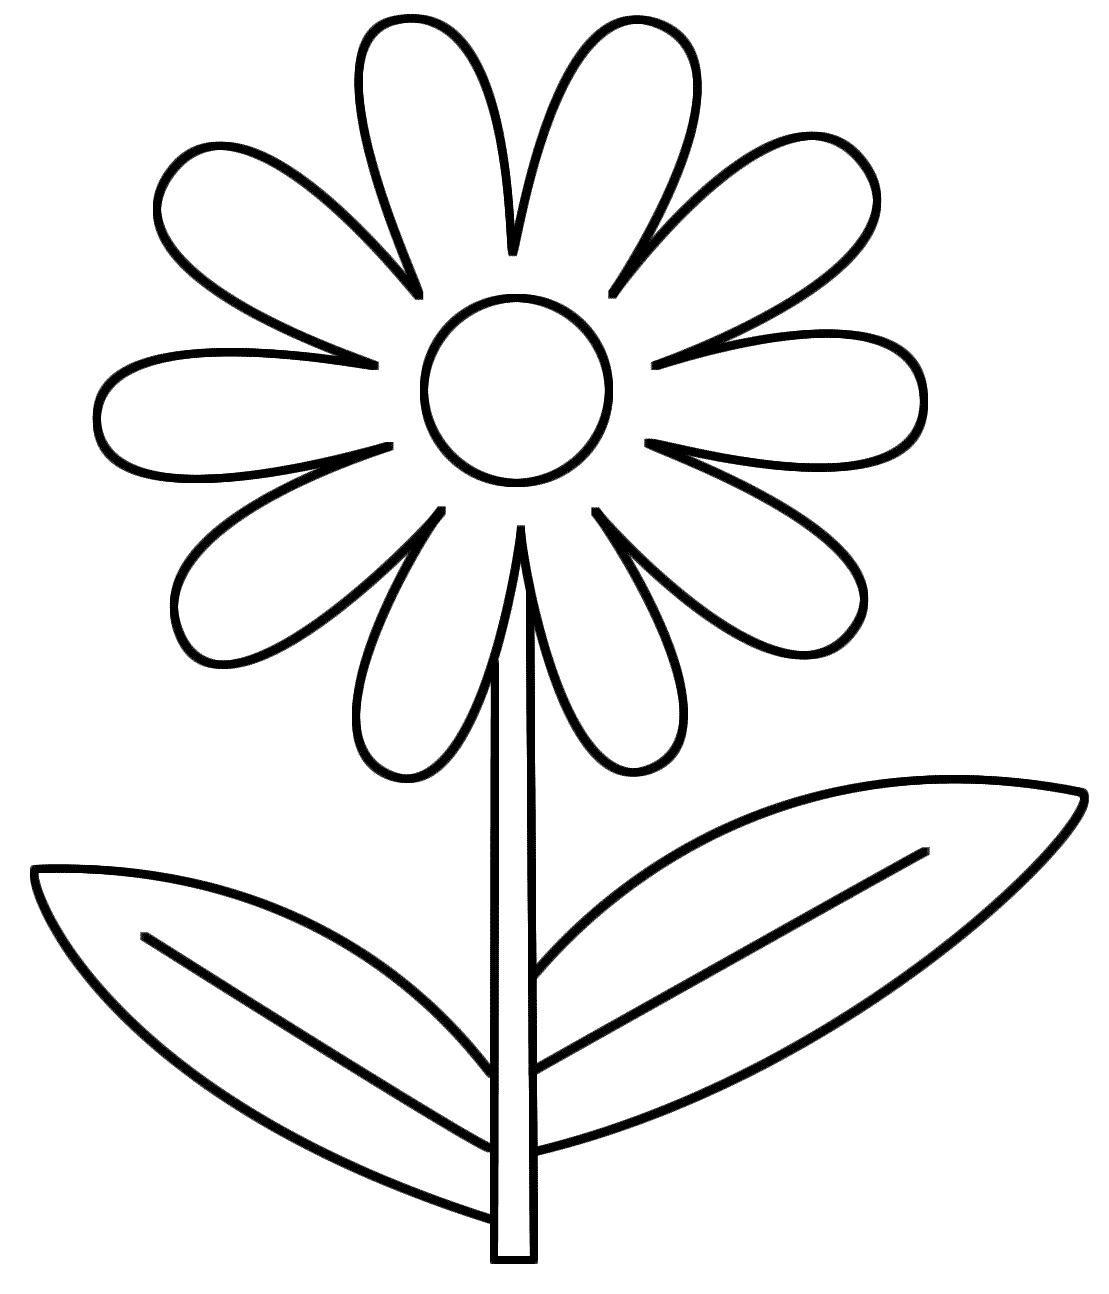 f is for flower lowercase f printing worksheet trace 3 print 3 for f flower is